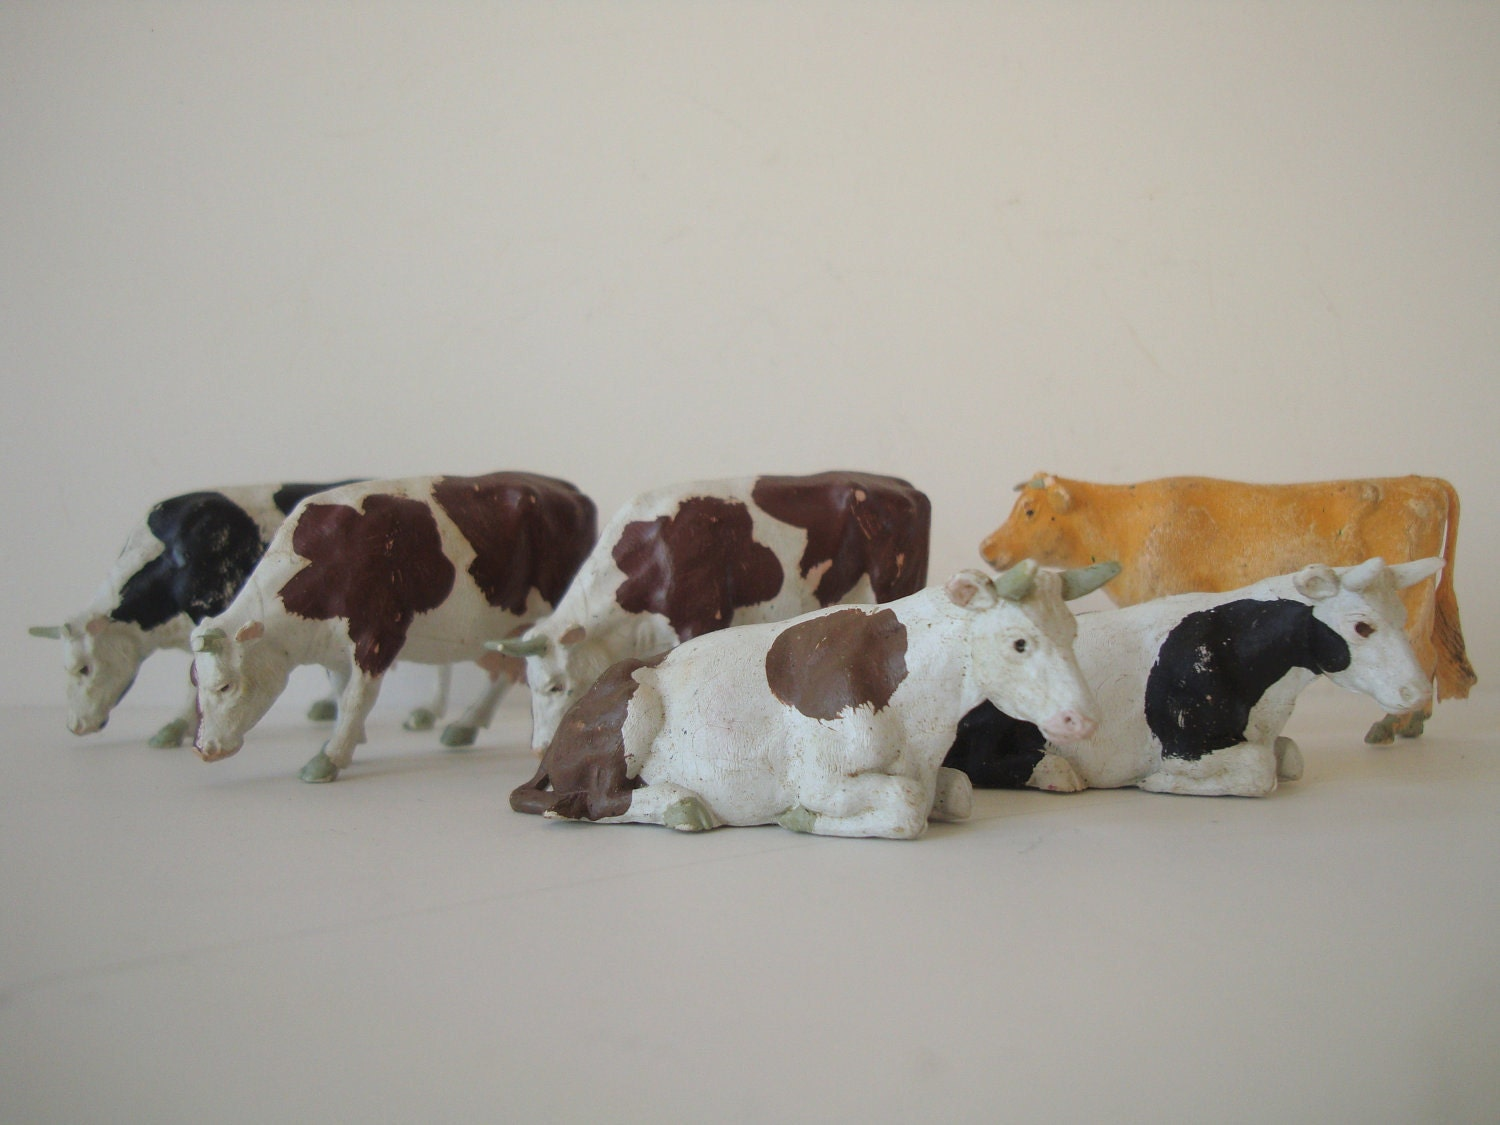 Vintage Cows  for Your Private Collection Nicely Detailed  Britains ltd. England 1960s Set of 6